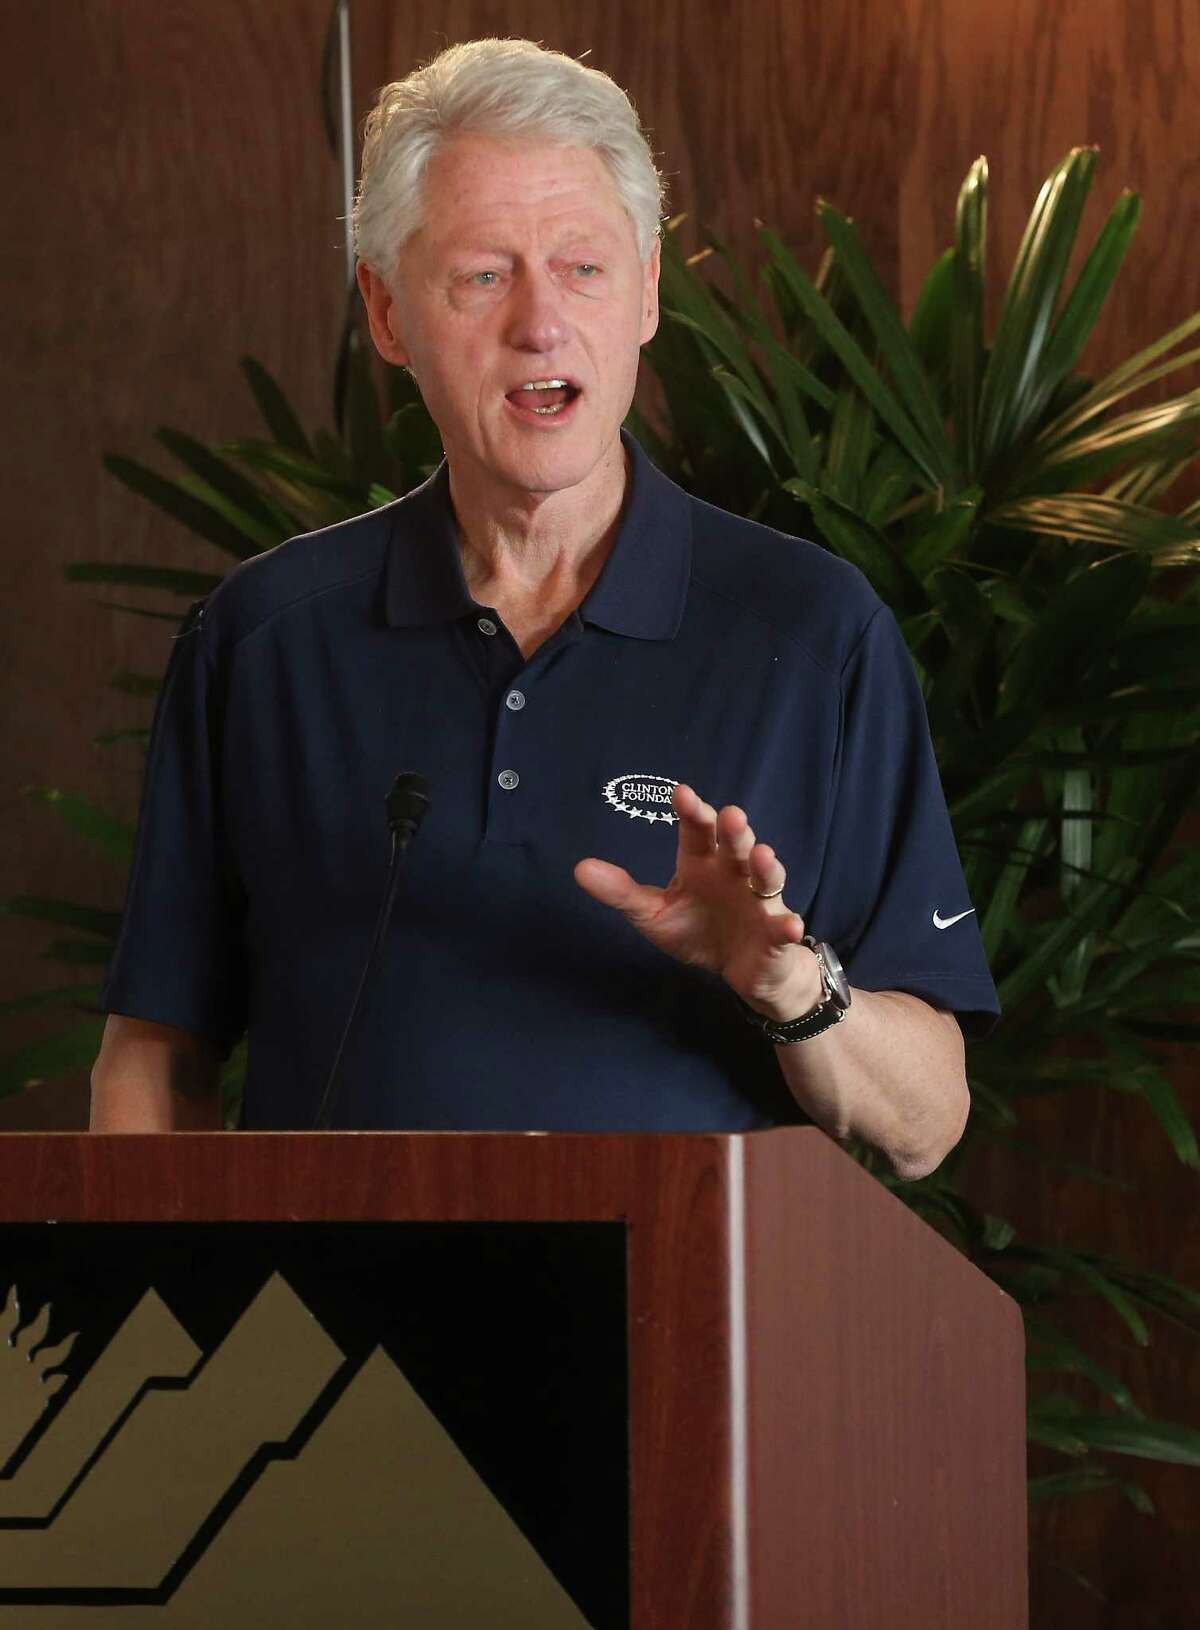 Former U.S. President Bill Clinton speaks during a press conference before the opening round of the Humana Challenge in partnership with the Clinton Foundation at PGA West on January 16, 2014 in La Quinta, California.